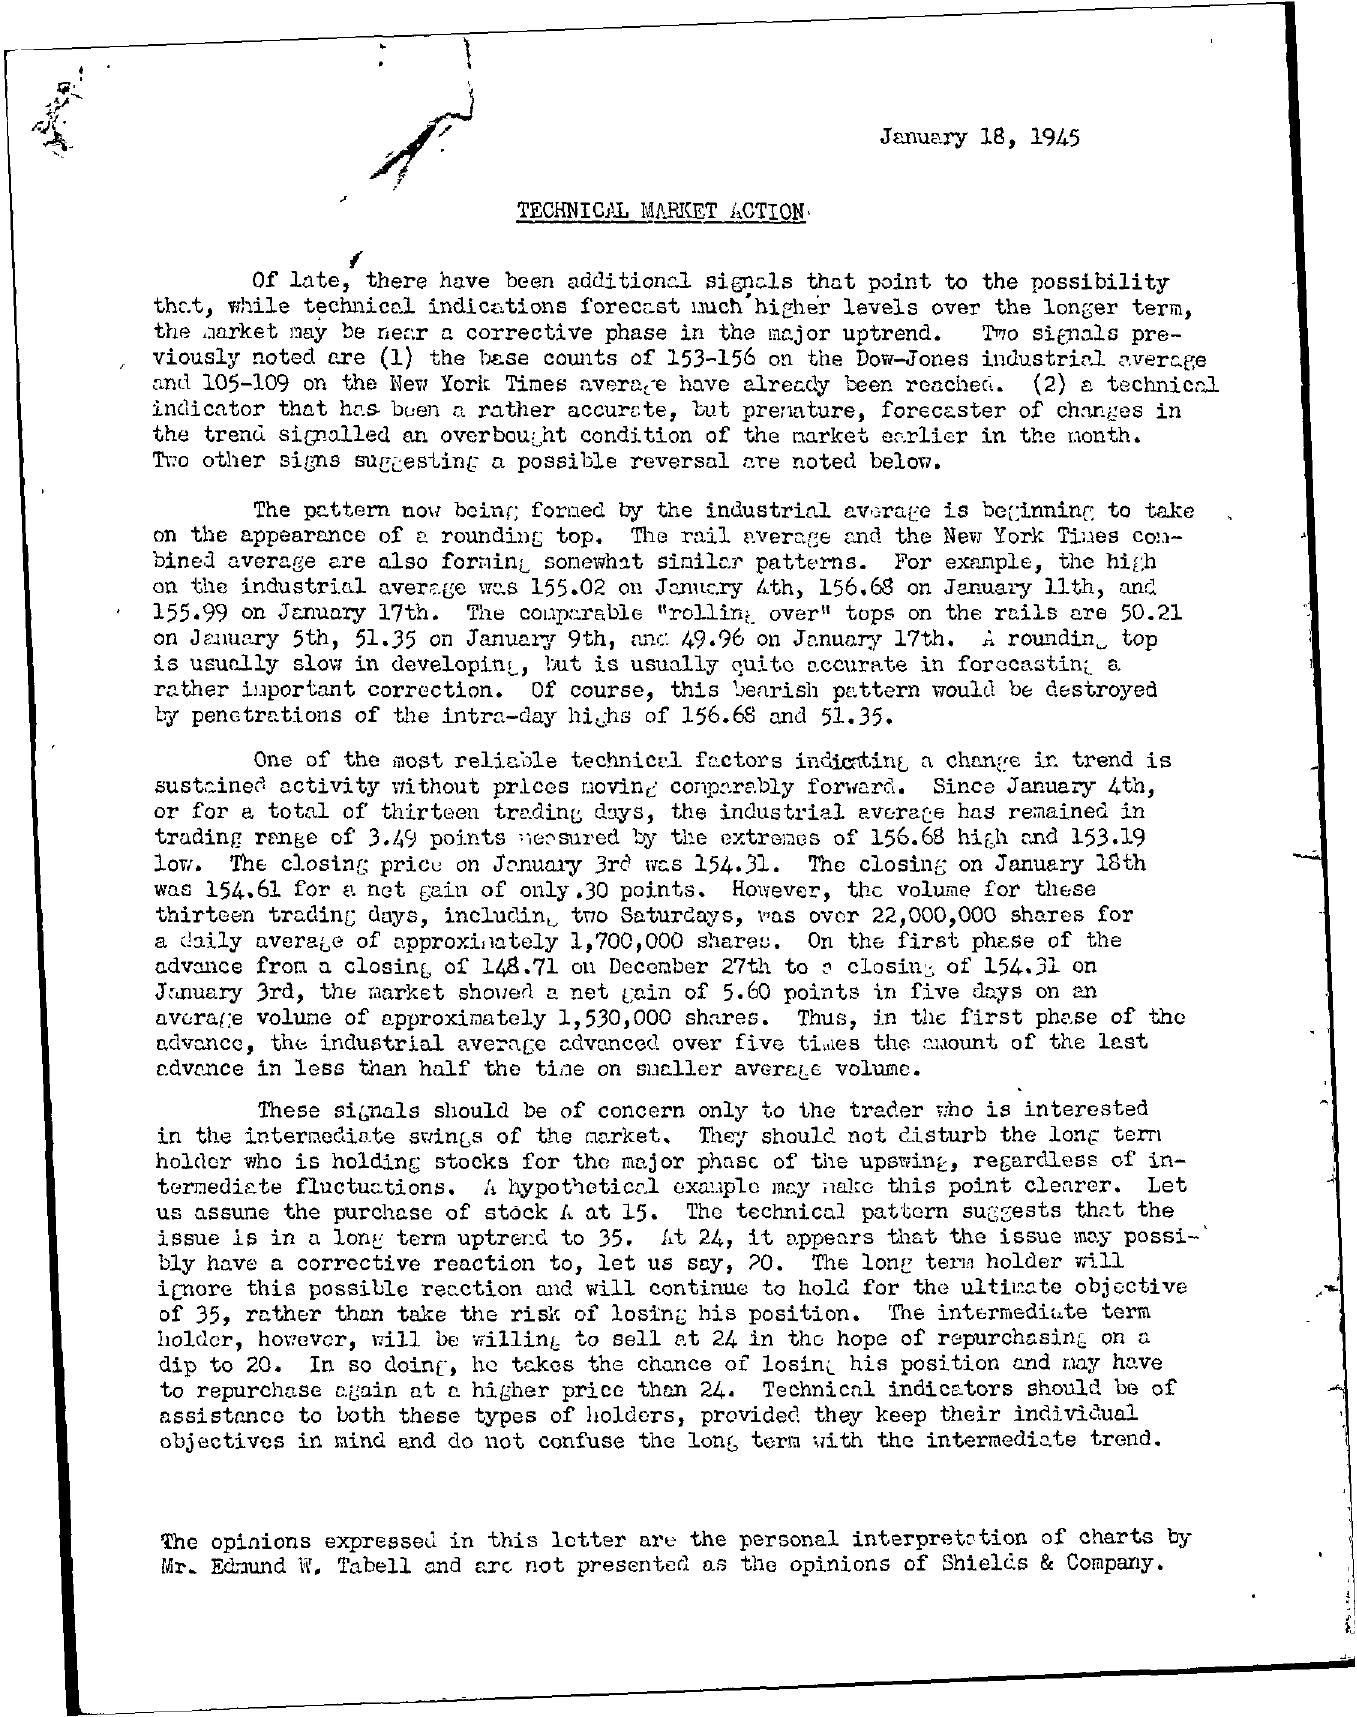 Tabell's Market Letter - January 18, 1945 page 1